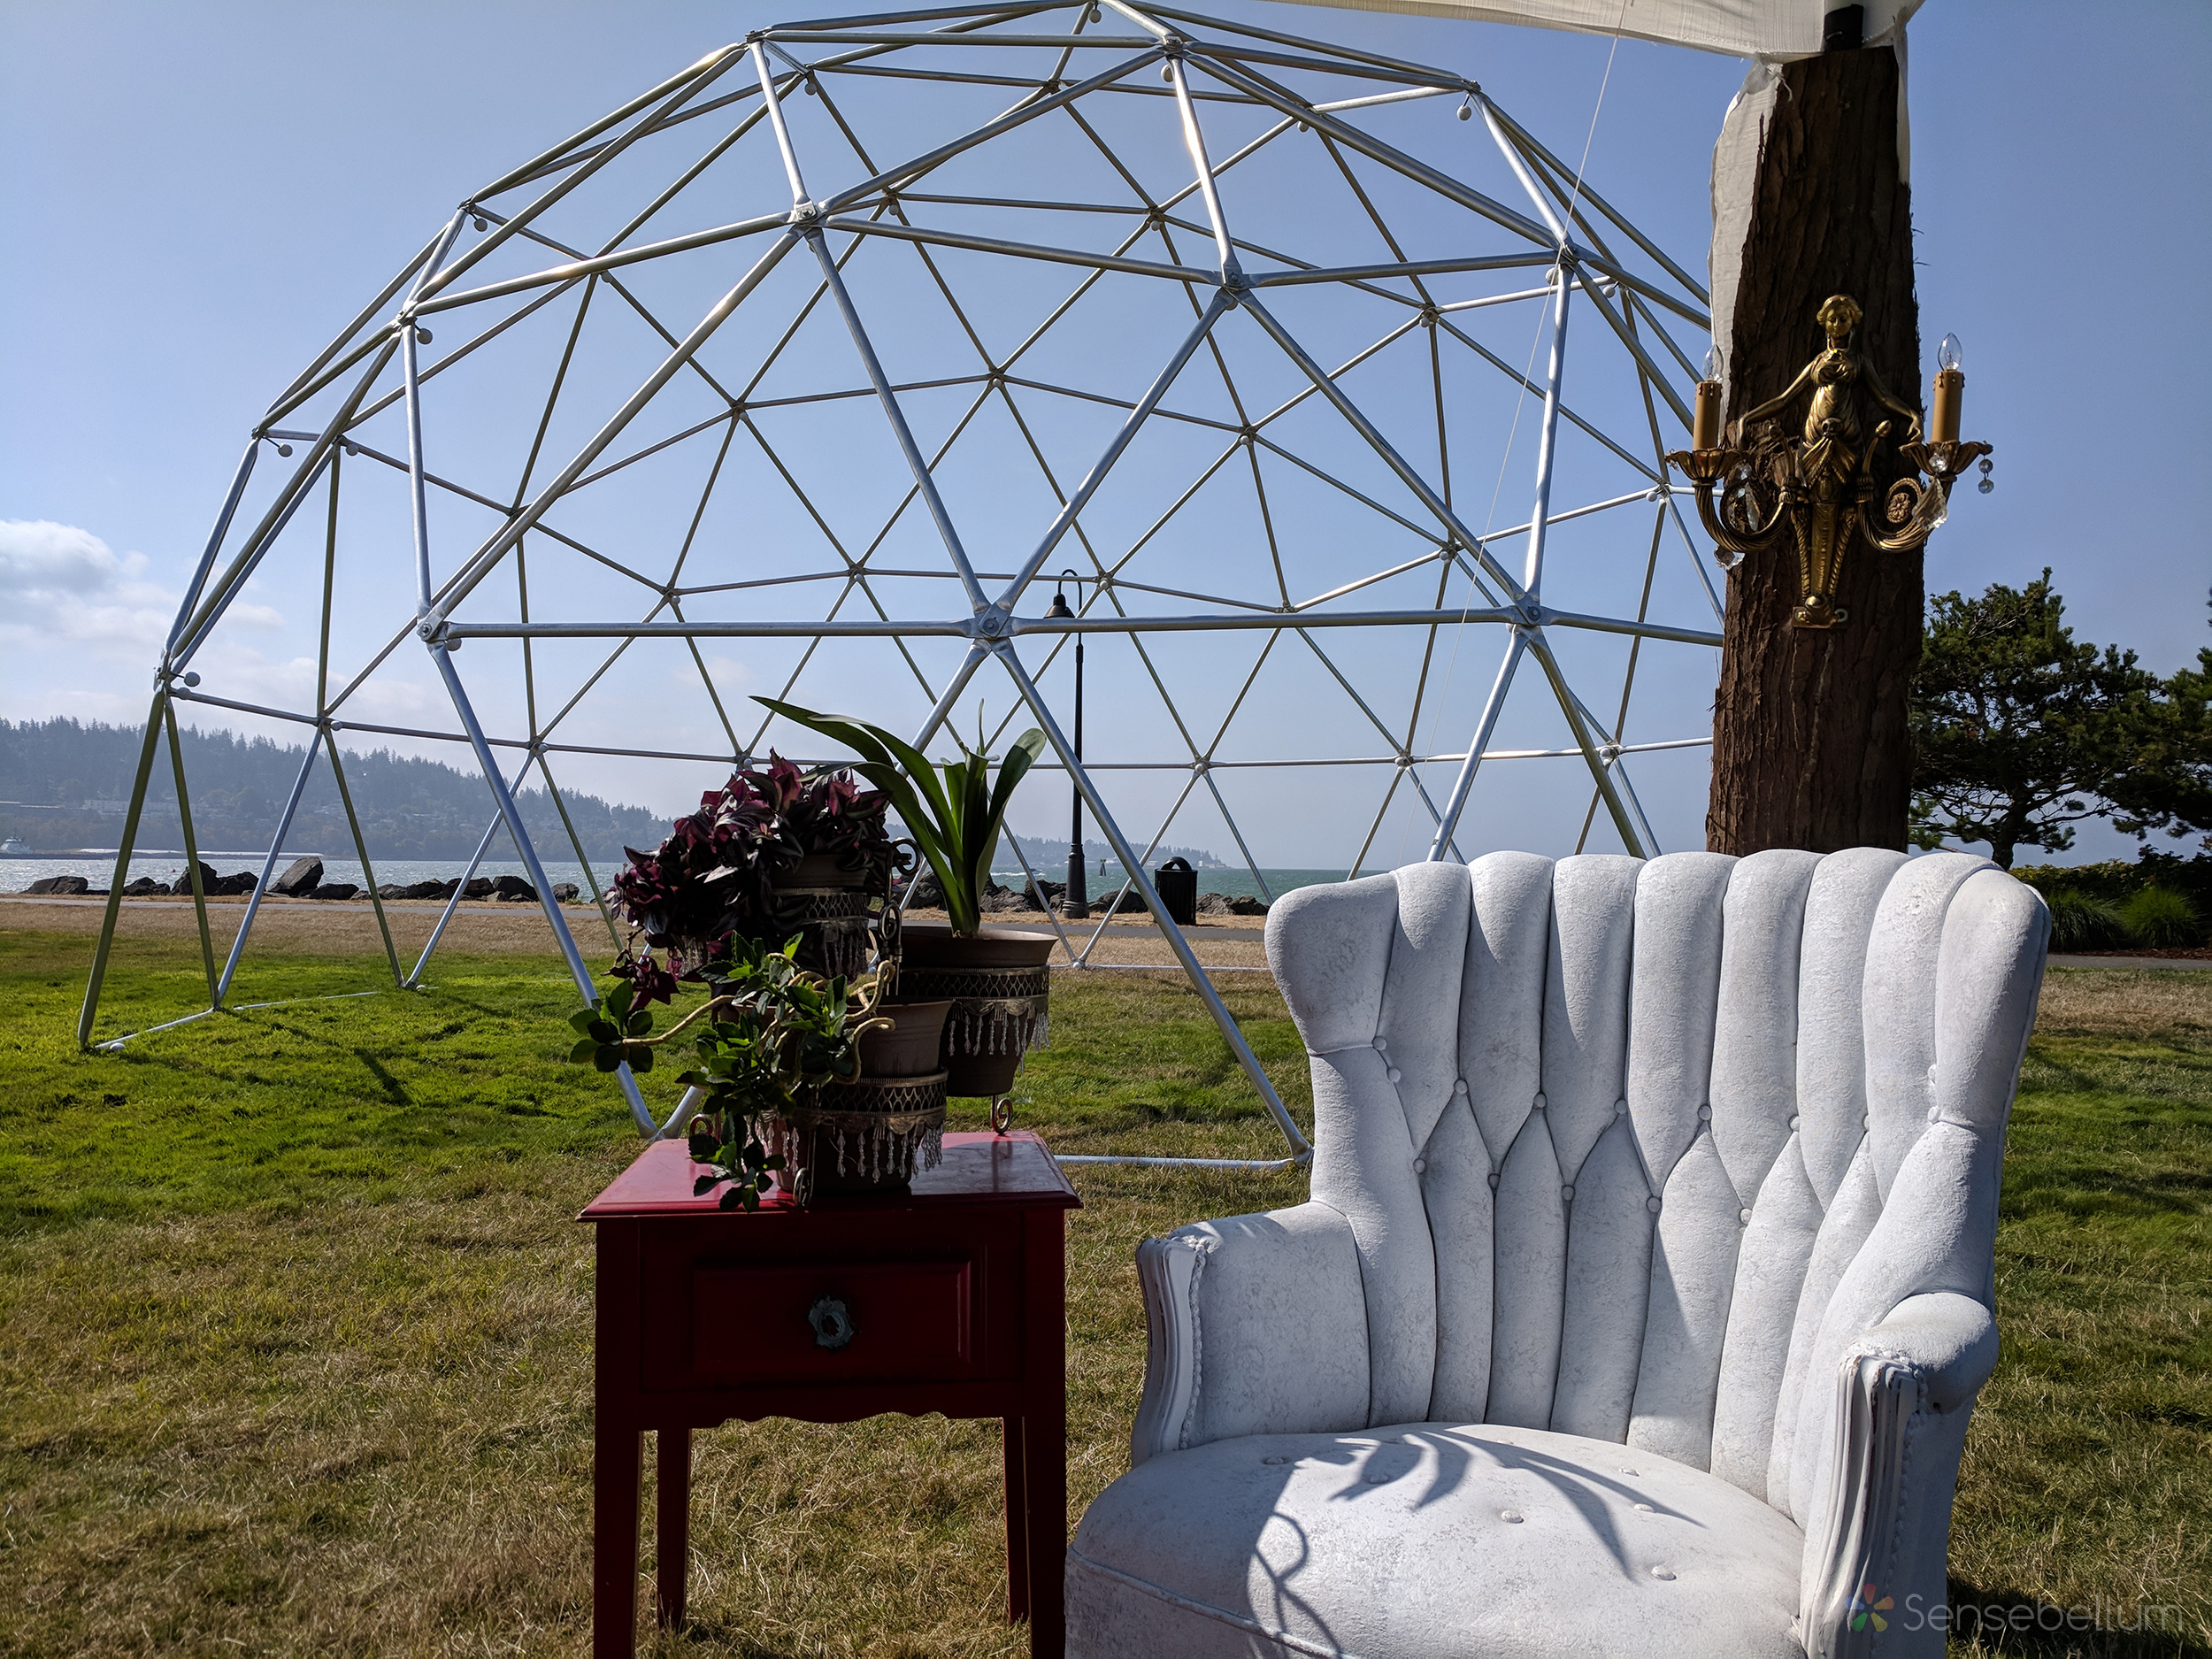 Sensebellum Aluminum Geodesic Dome Rental Company Bellingham Seattle Washington West Coast Event Lighting Planning Company 6 copy.jpg